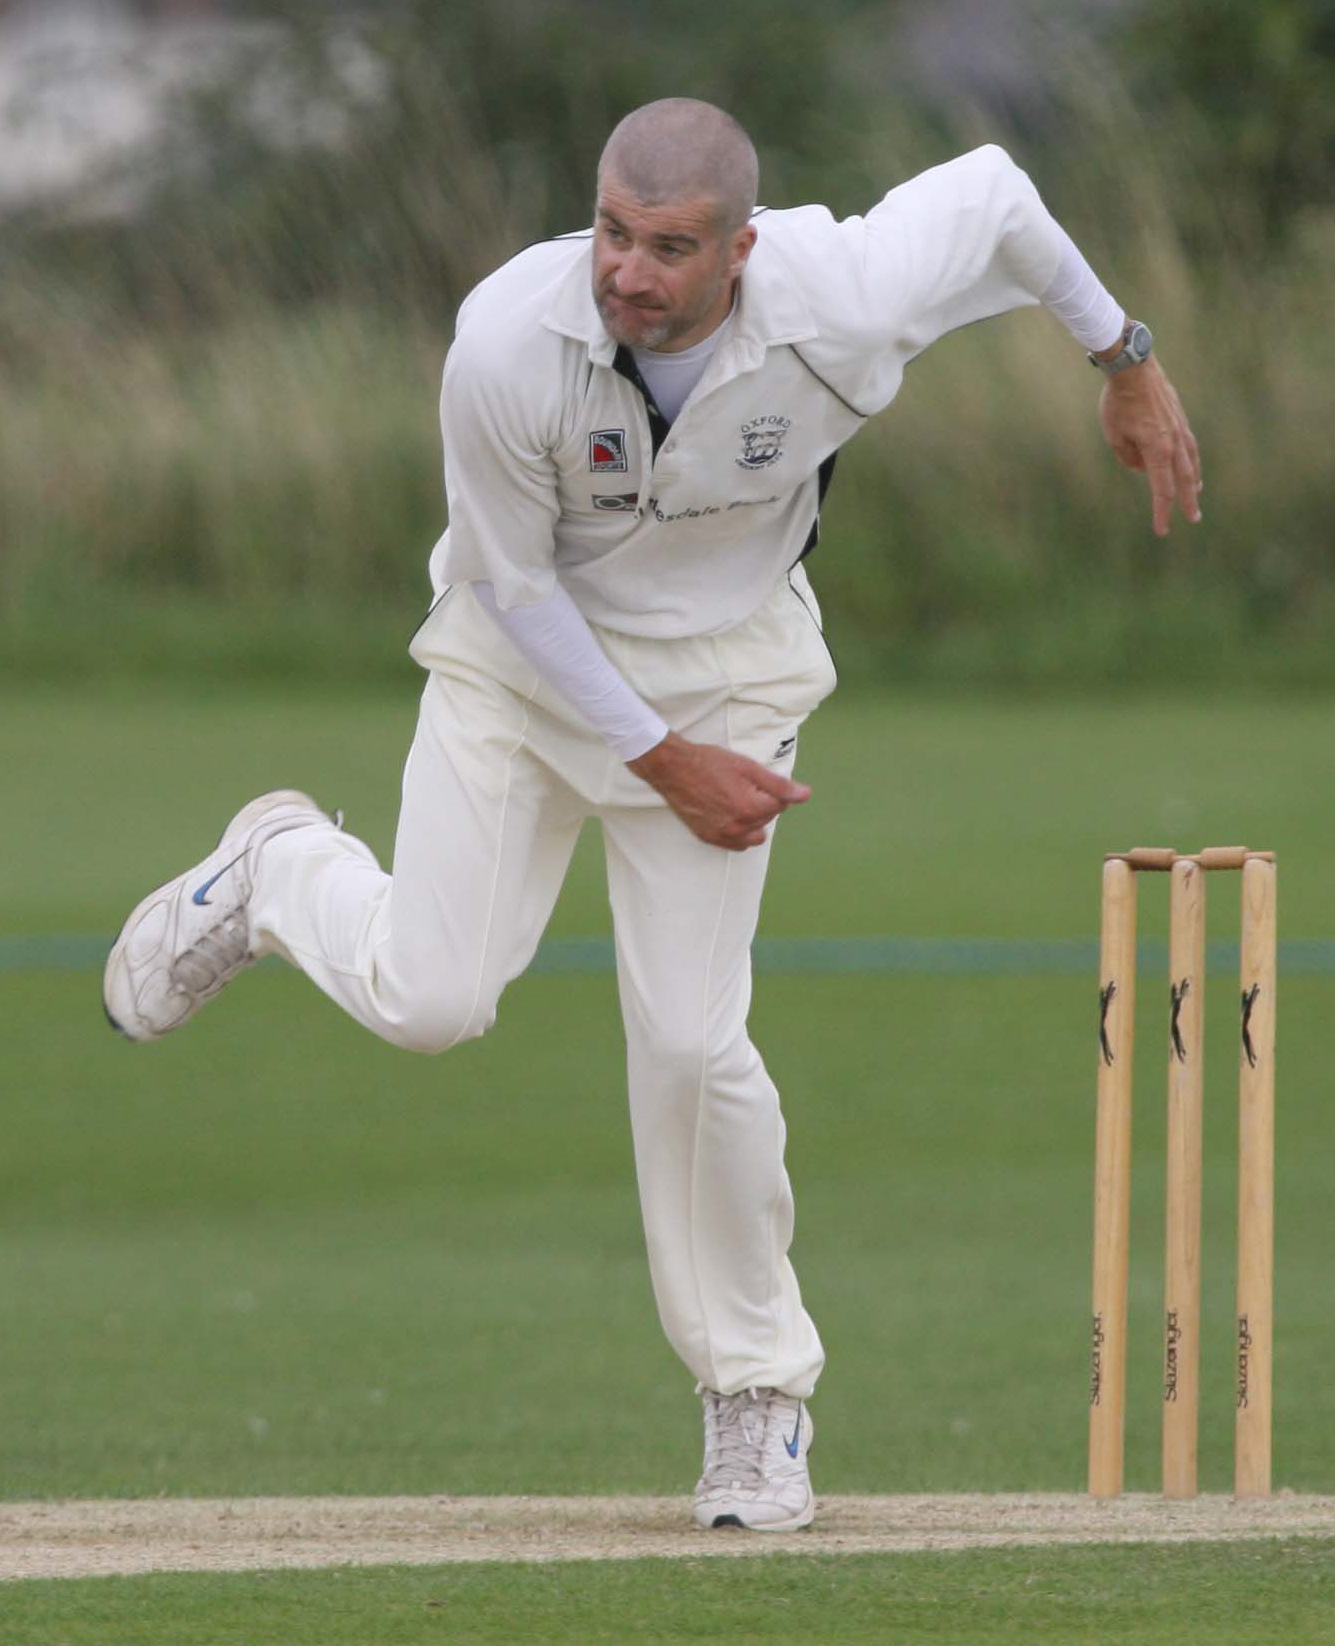 Graham Charlesworth took five wickets as Abingdon Vale defeated Cumnor